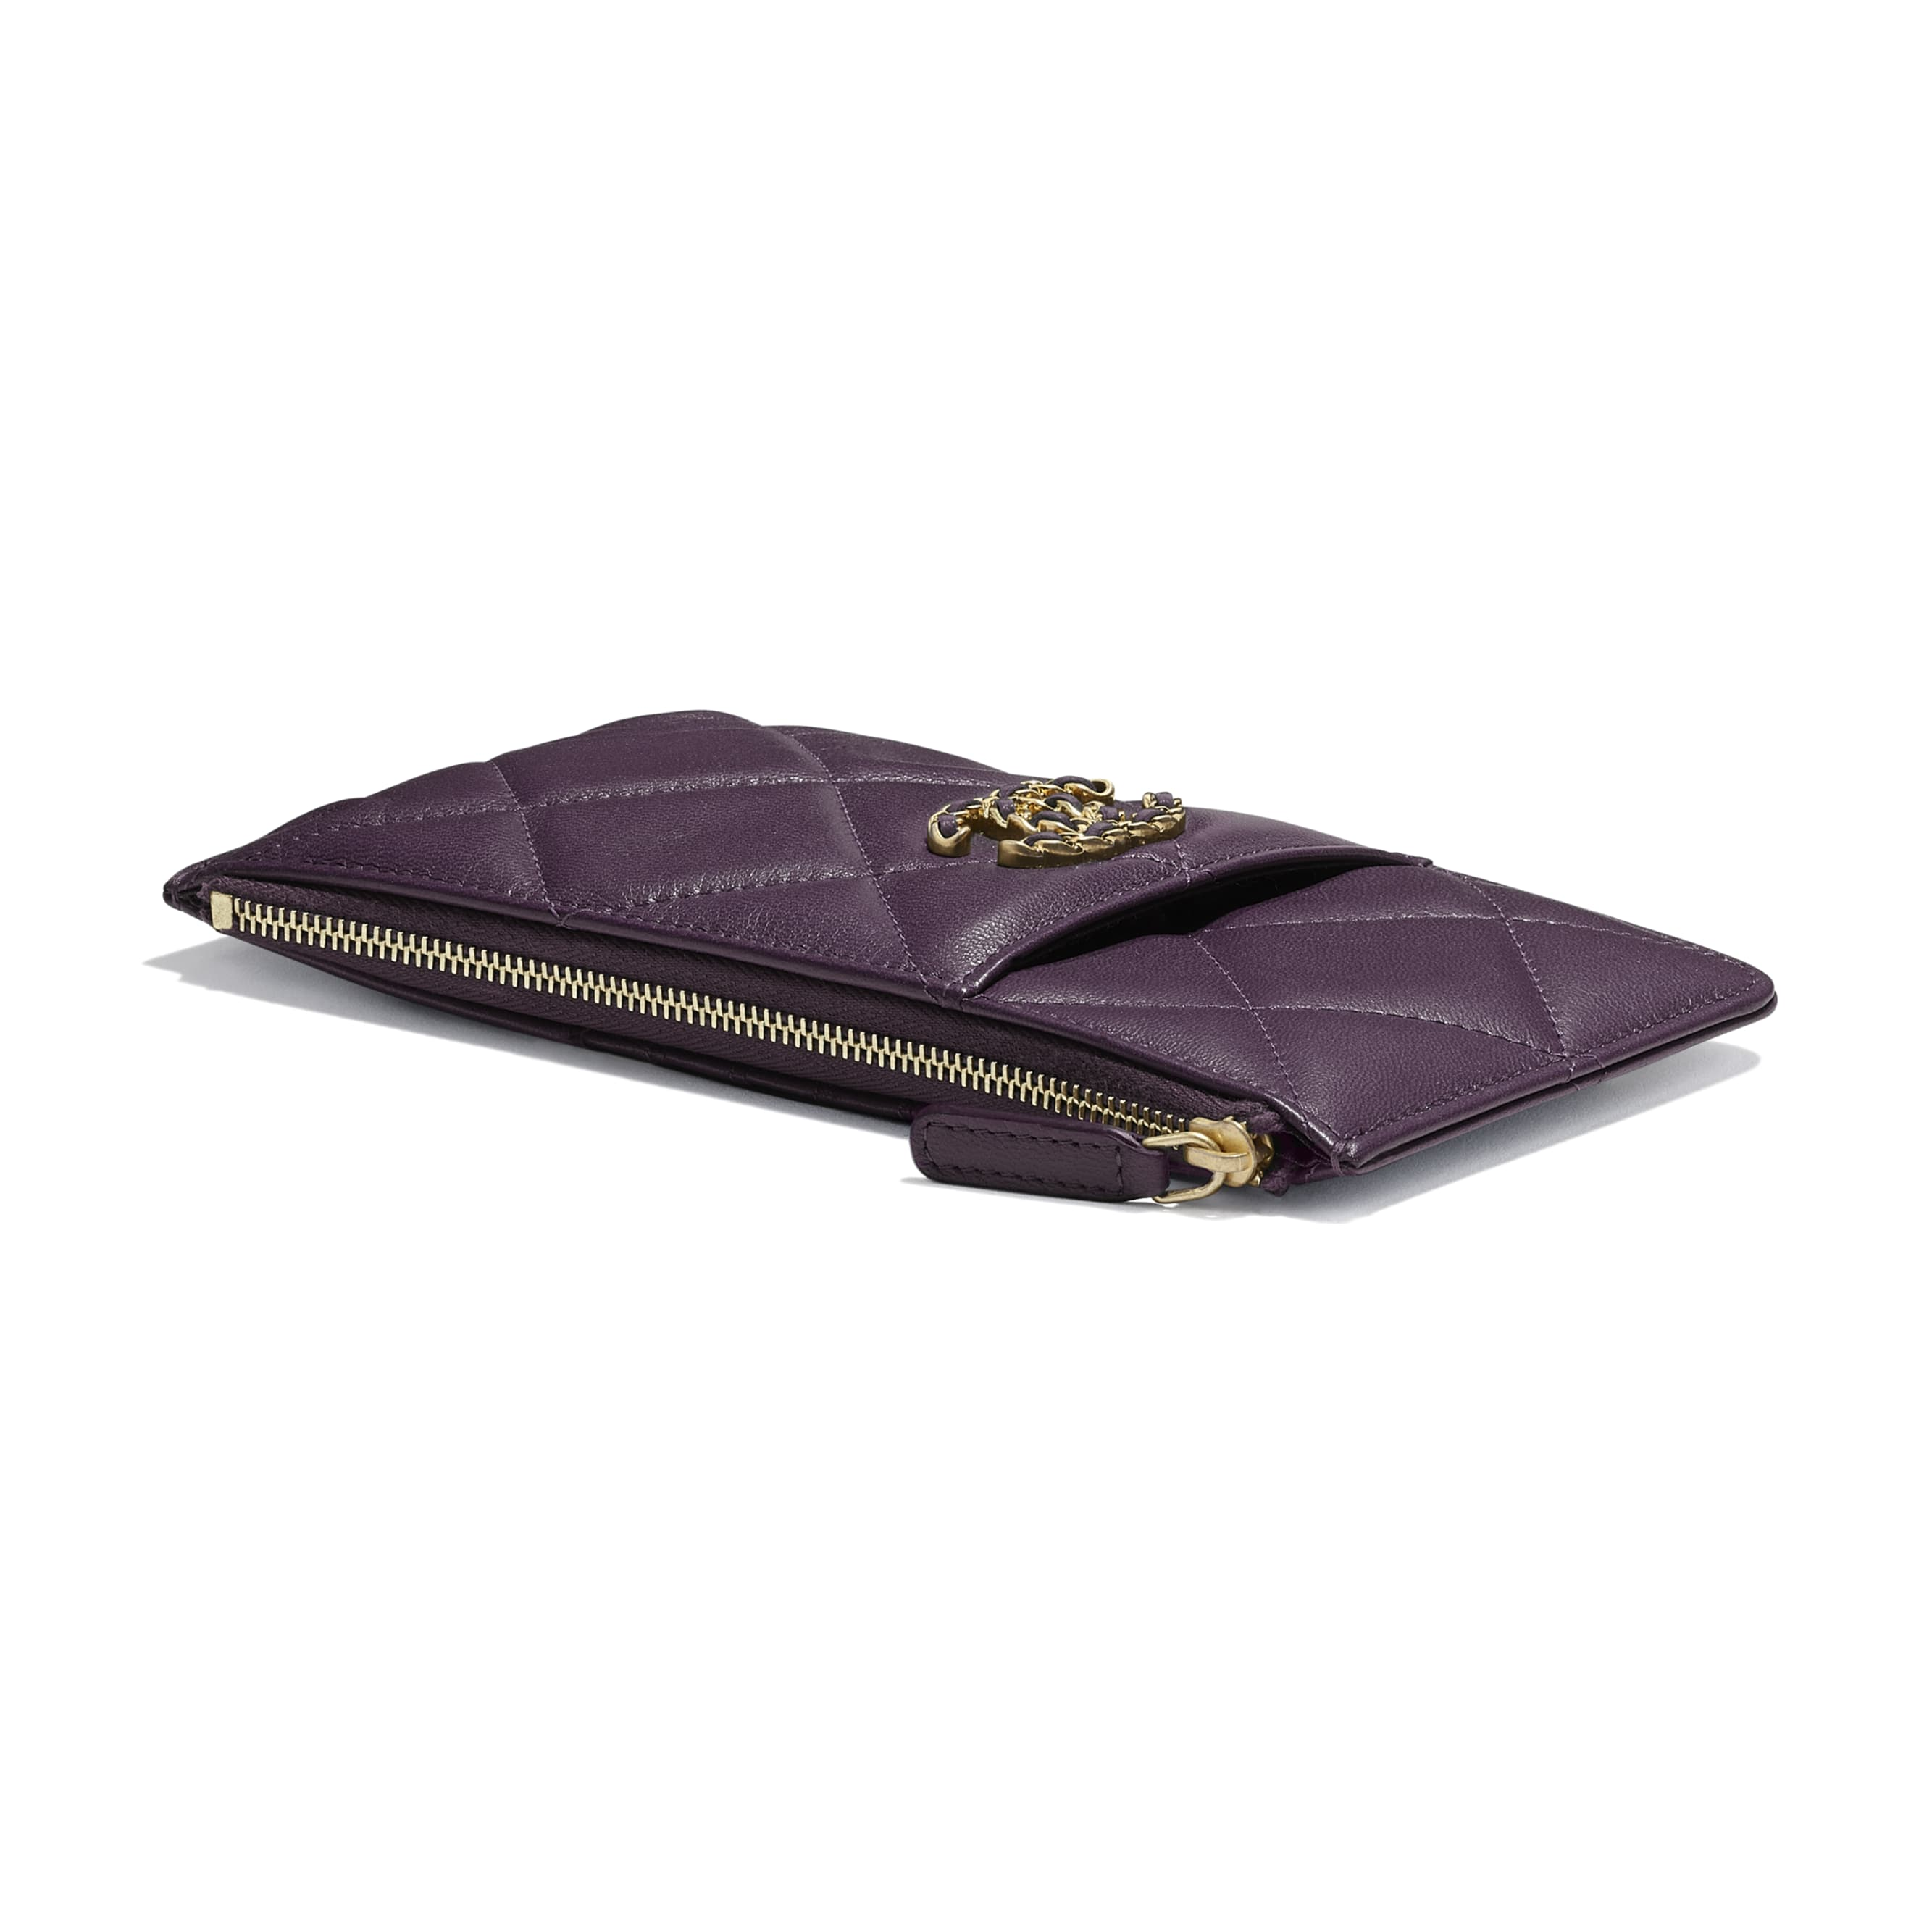 CHANEL 19 Phone & Card Holder - Purple - Shiny Goatskin & Gold-Tone Metal - CHANEL - Extra view - see standard sized version